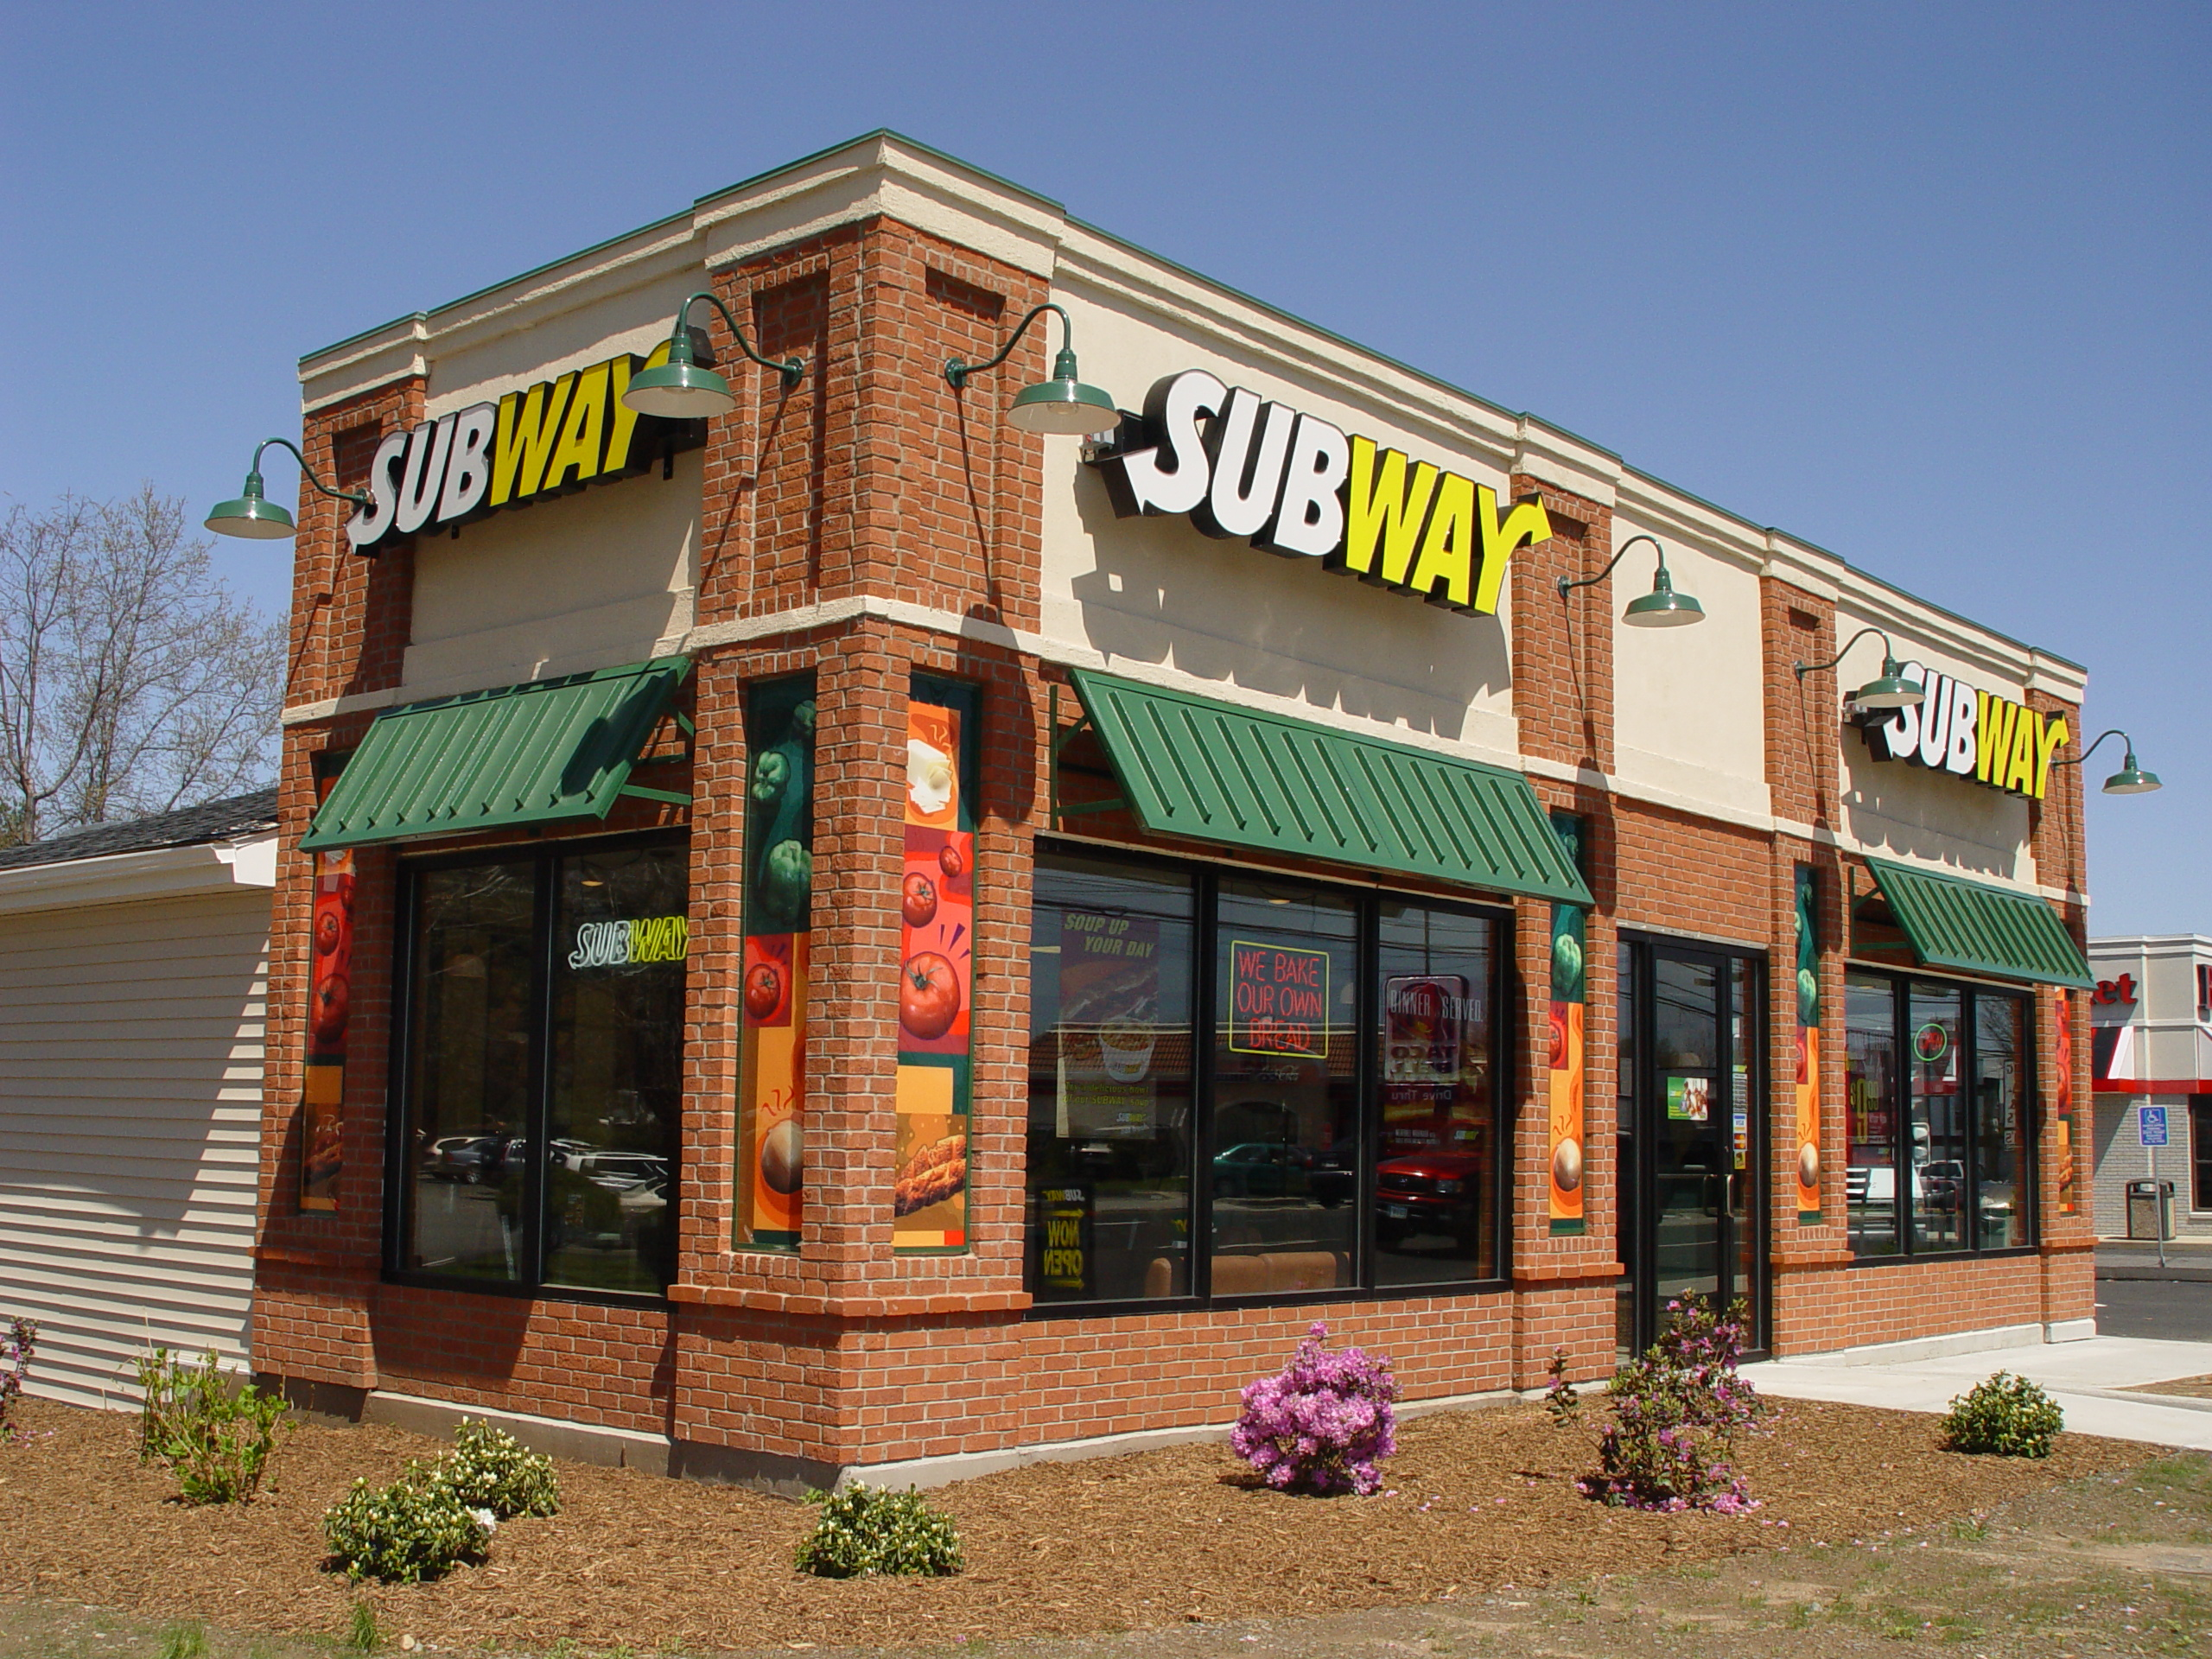 Subway, Glenwood IA